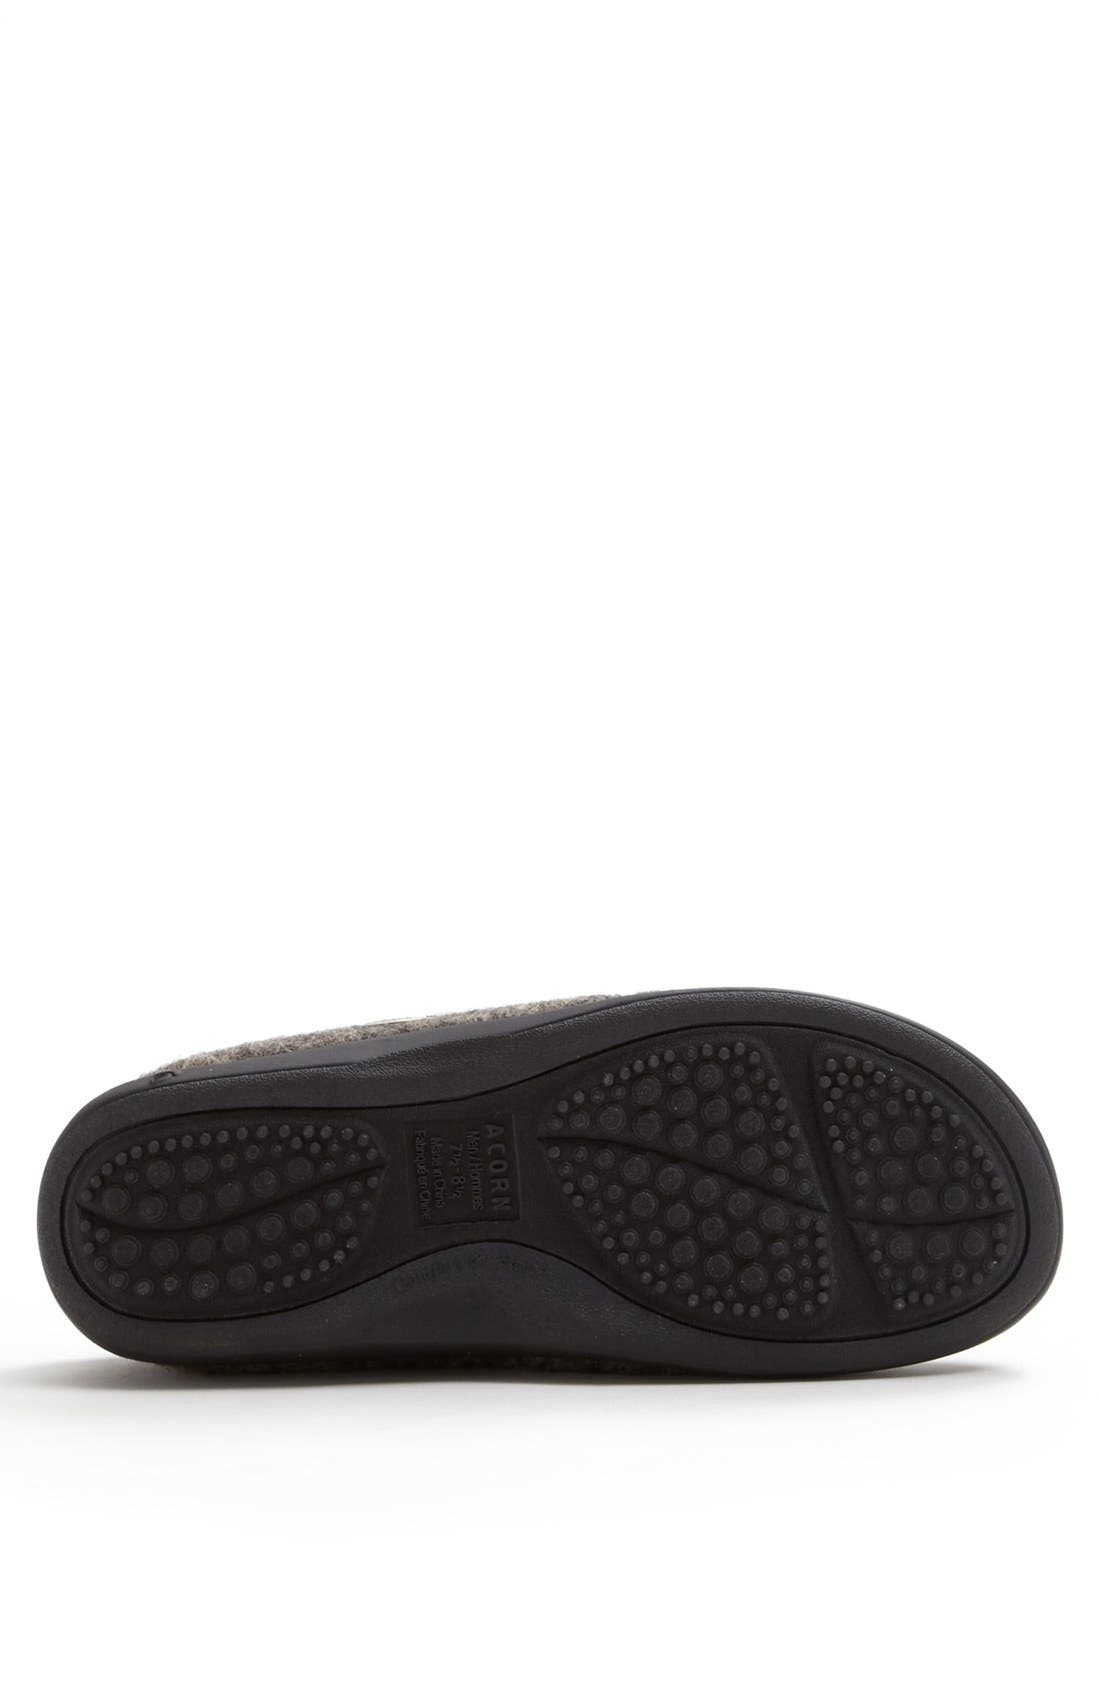 'Digby' Slipper,                             Alternate thumbnail 31, color,